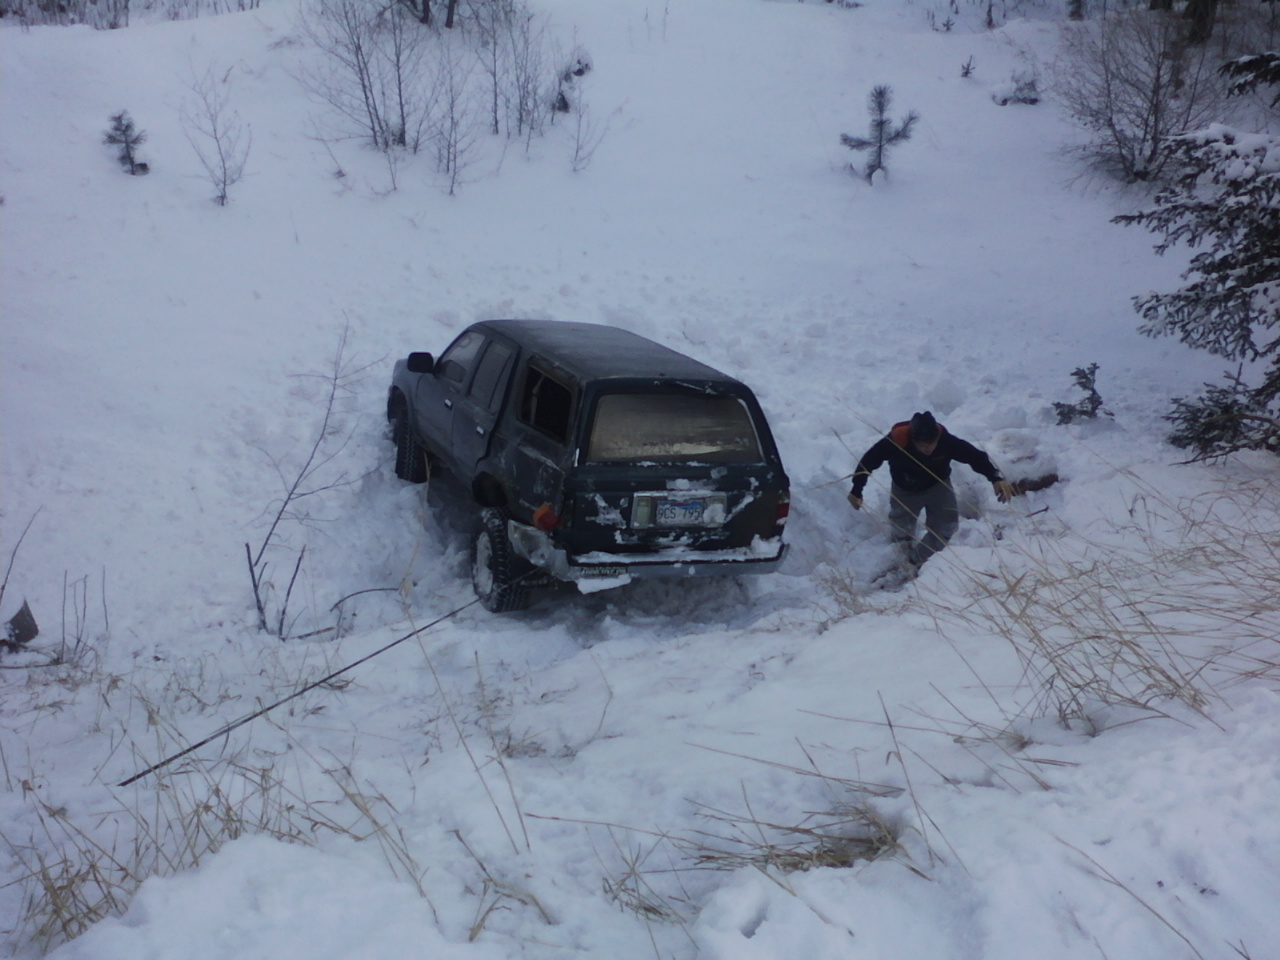 Slippery roads left this vehicle down a steep bank about 70 feet.